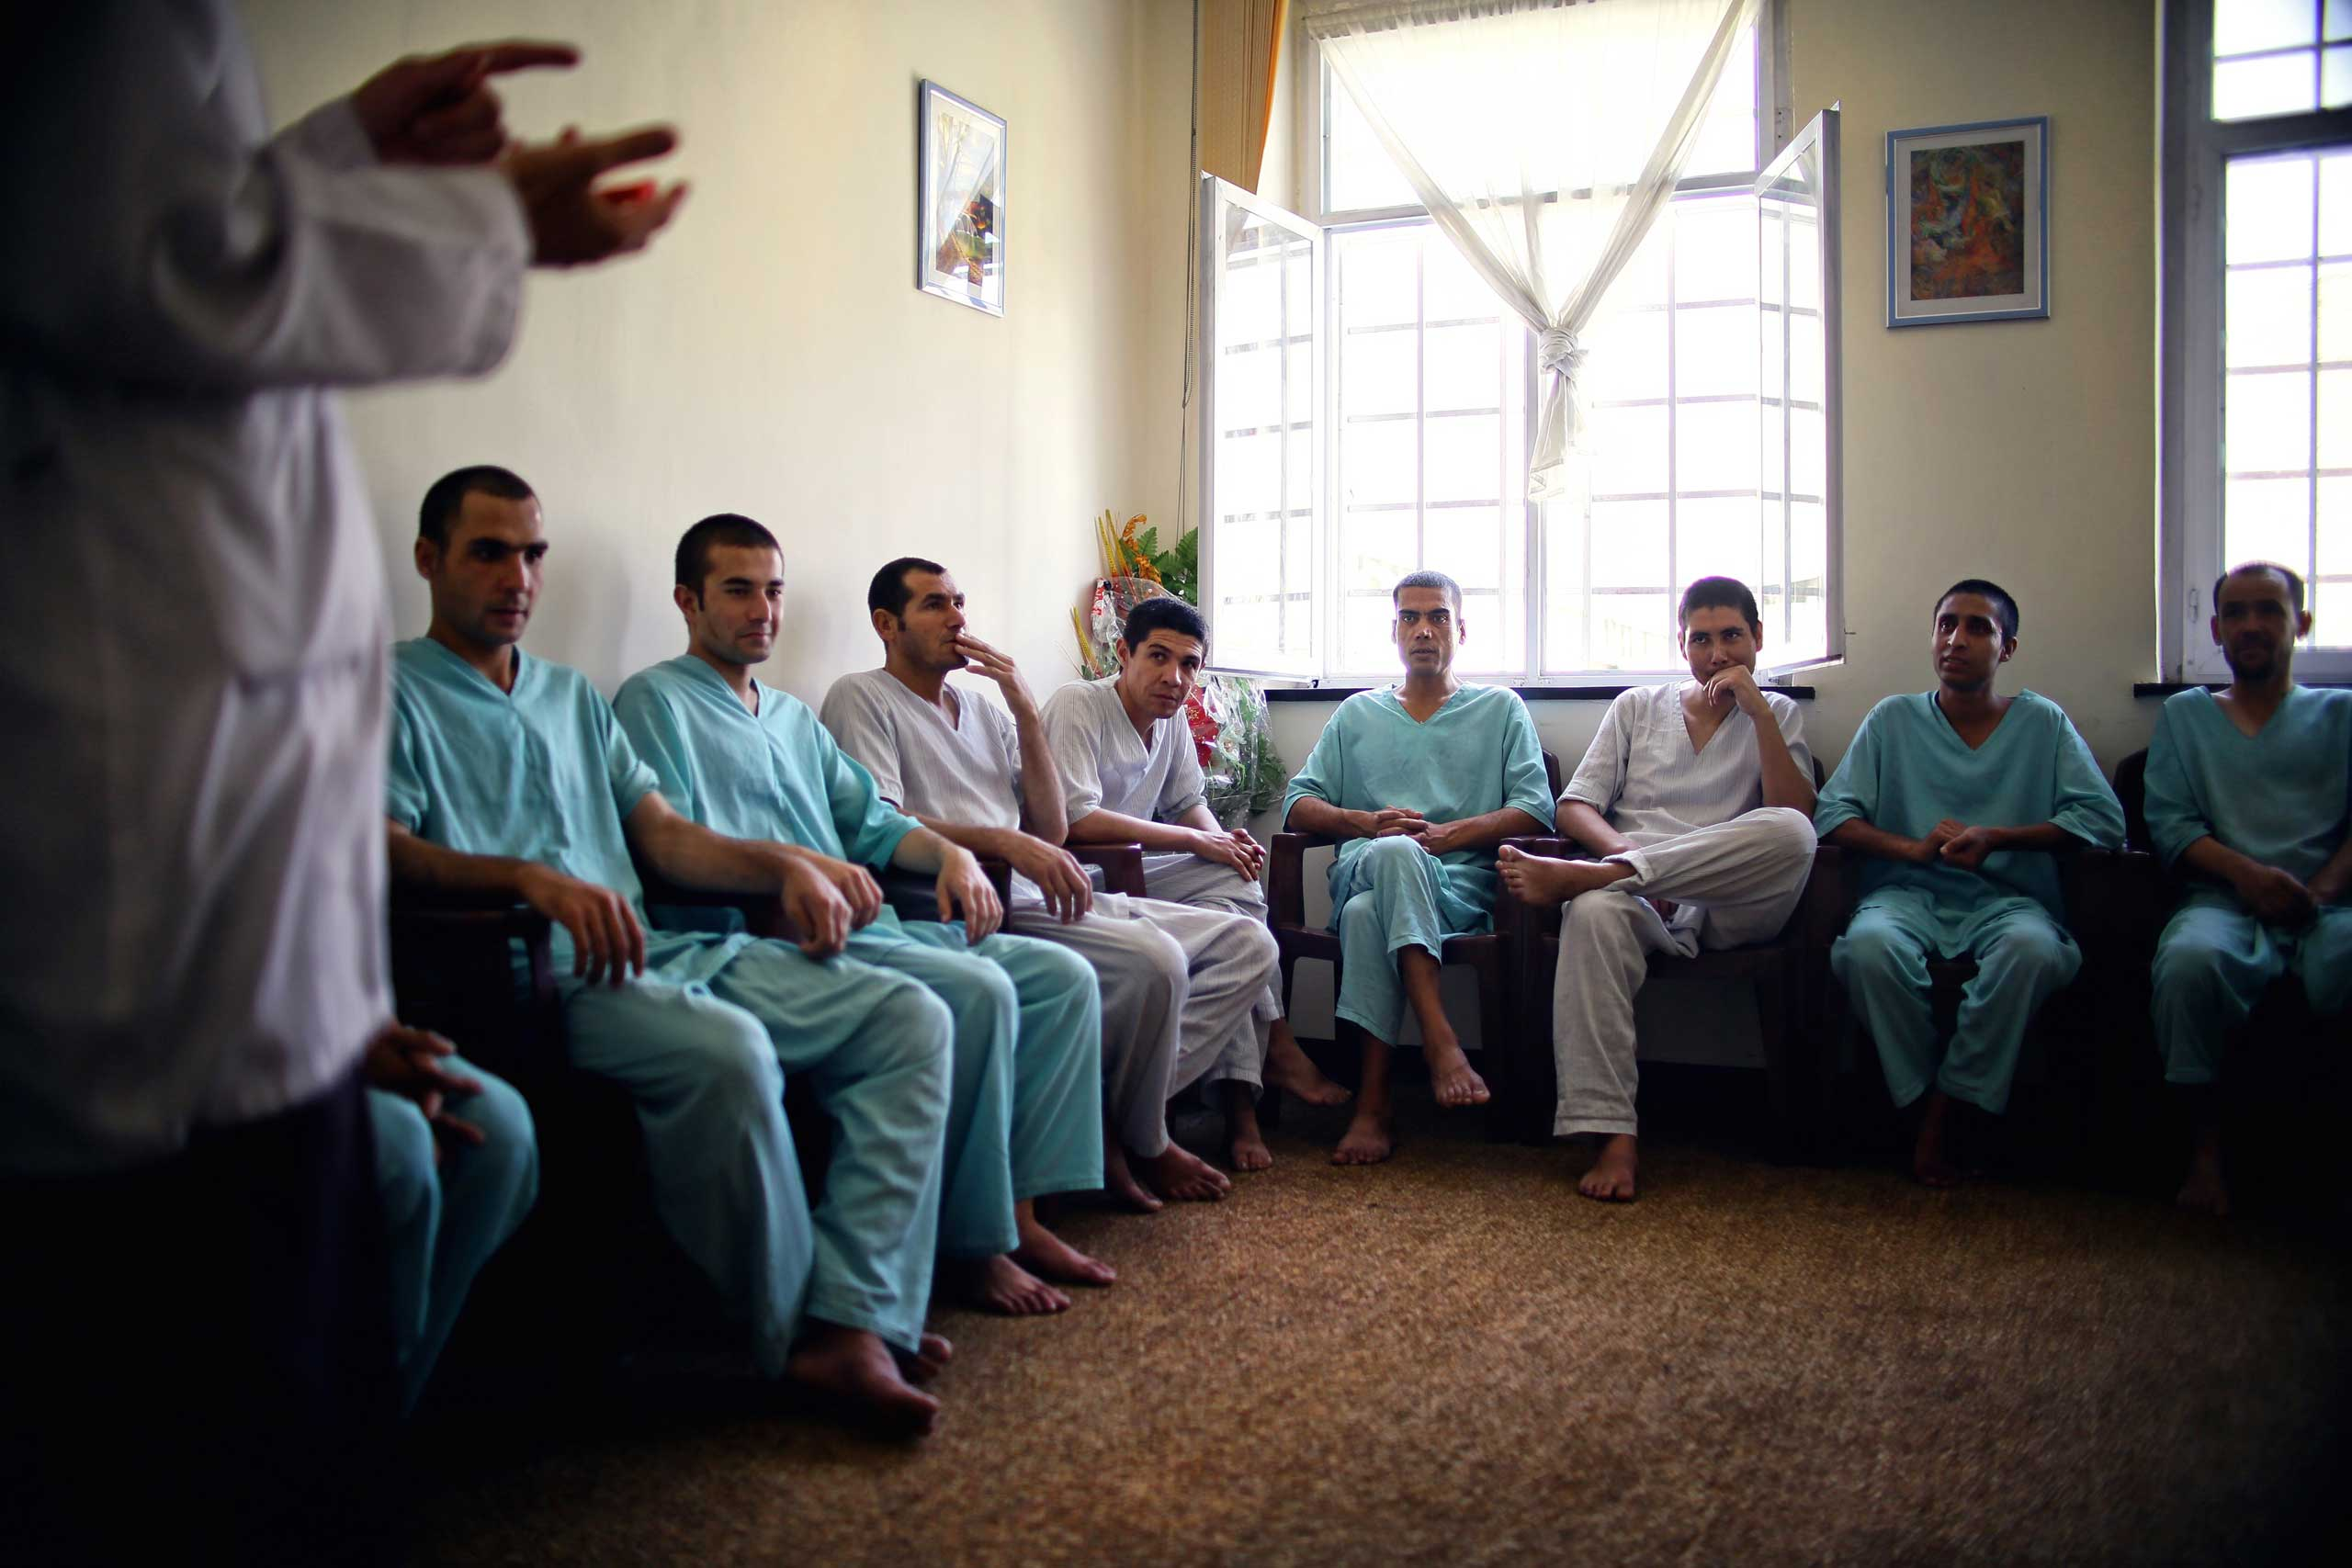 Recovering addicts attend a group counseling session at the government run Jangalak rehabilitation centre in Kabul on Aug. 24, 2014.